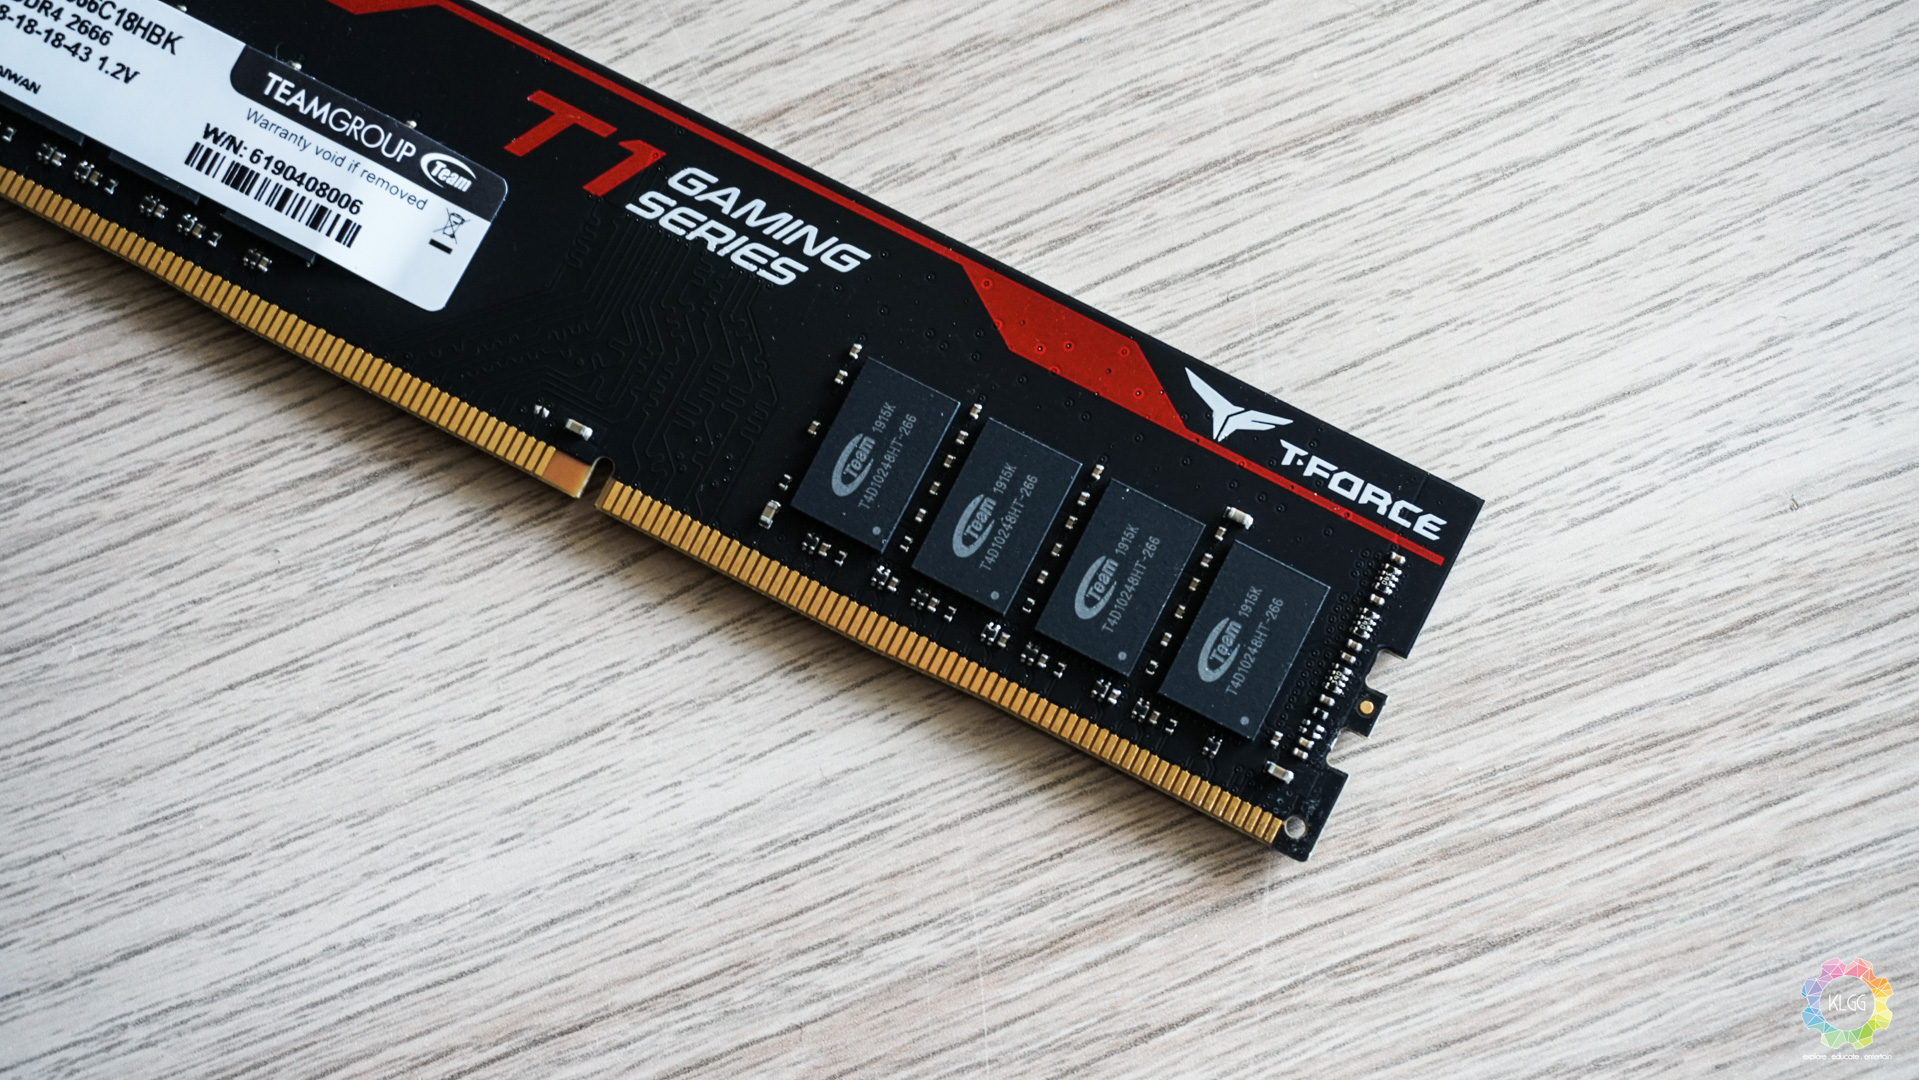 T-FORCE T1 DDR4 Gaming Memory Review: A Surprisingly Good Performing Value Gaming RAM 2